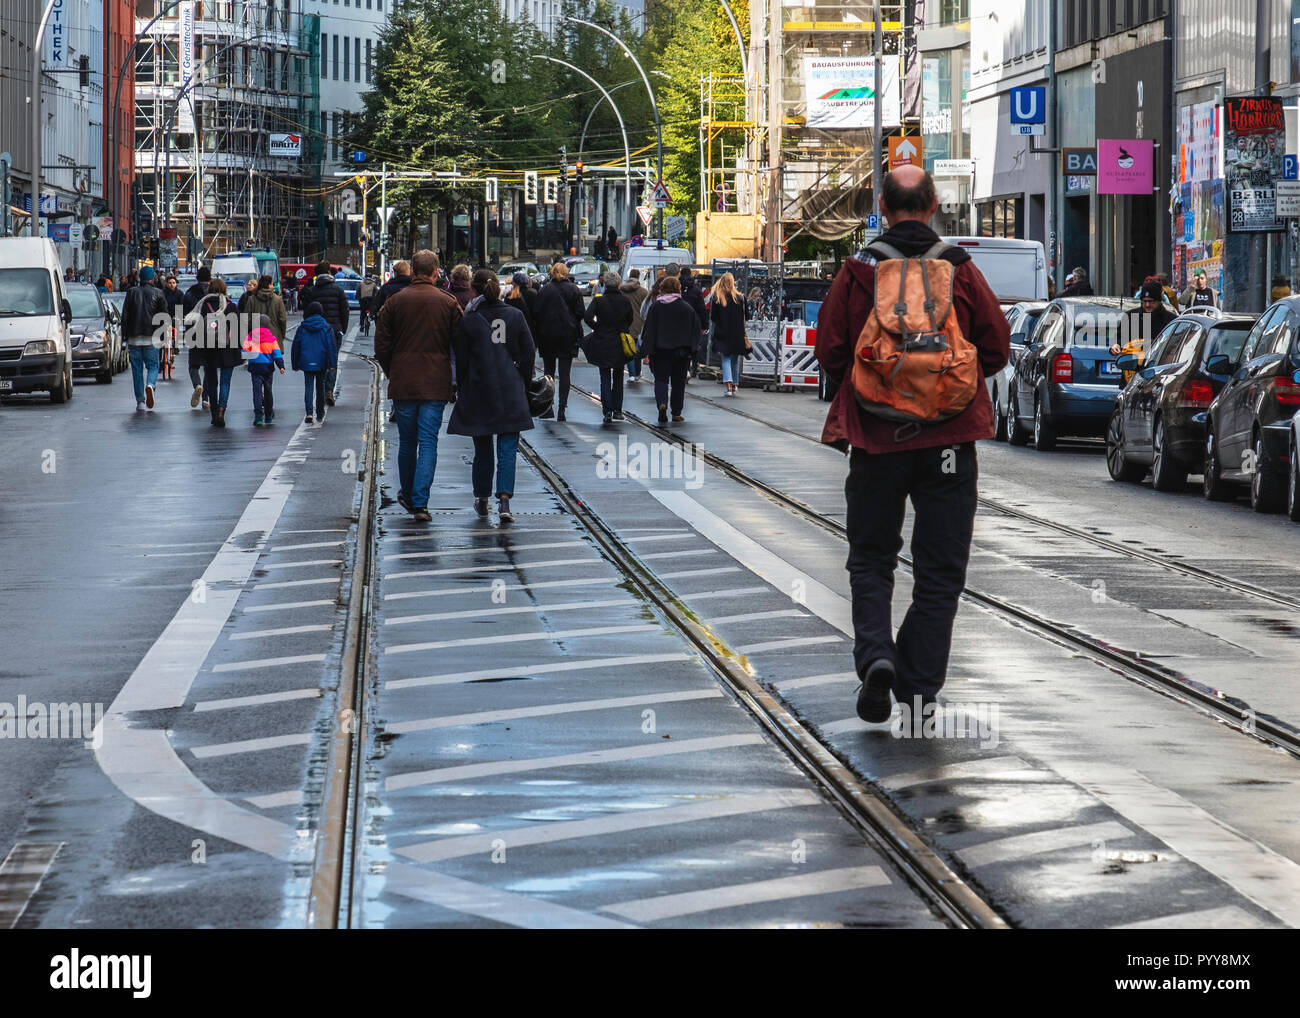 Berlin, Mitte, Brunnenstarsse. People walk in centre of traffic-free street wuich is closed to cars - Stock Image